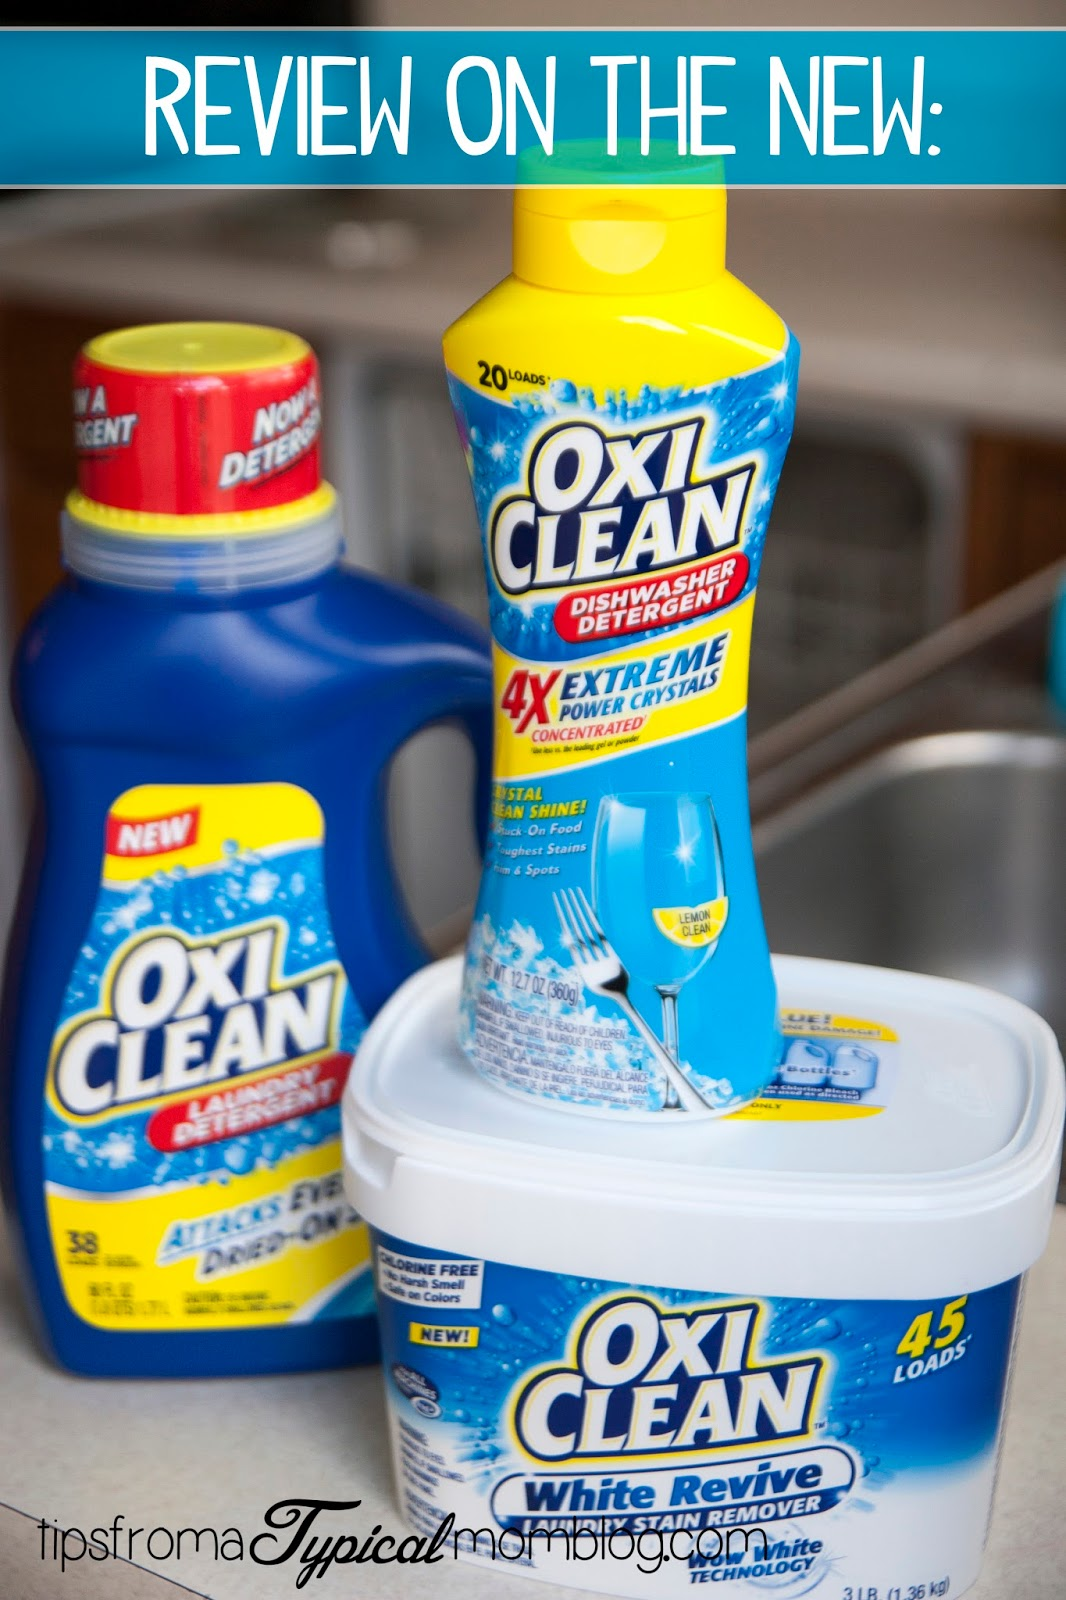 Sponsored: Spring Cleaning with OxiClean's New Products and a review from Tips From a Typical Mom. These cleaners are amazing! #MC